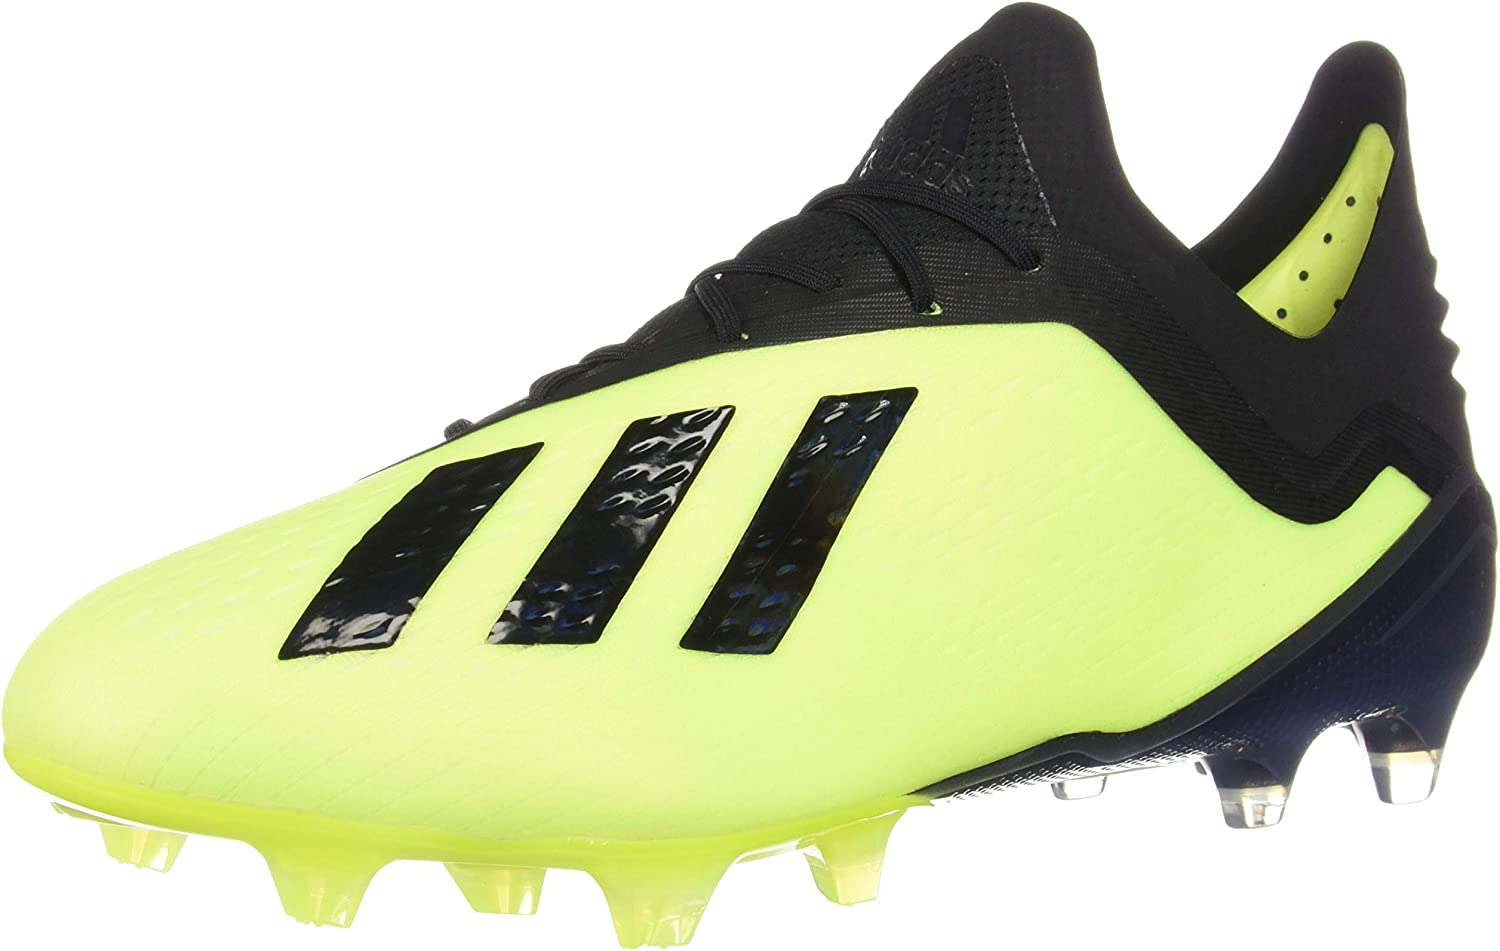 Adidas Men's X 18.1 FG Soccer Cleat